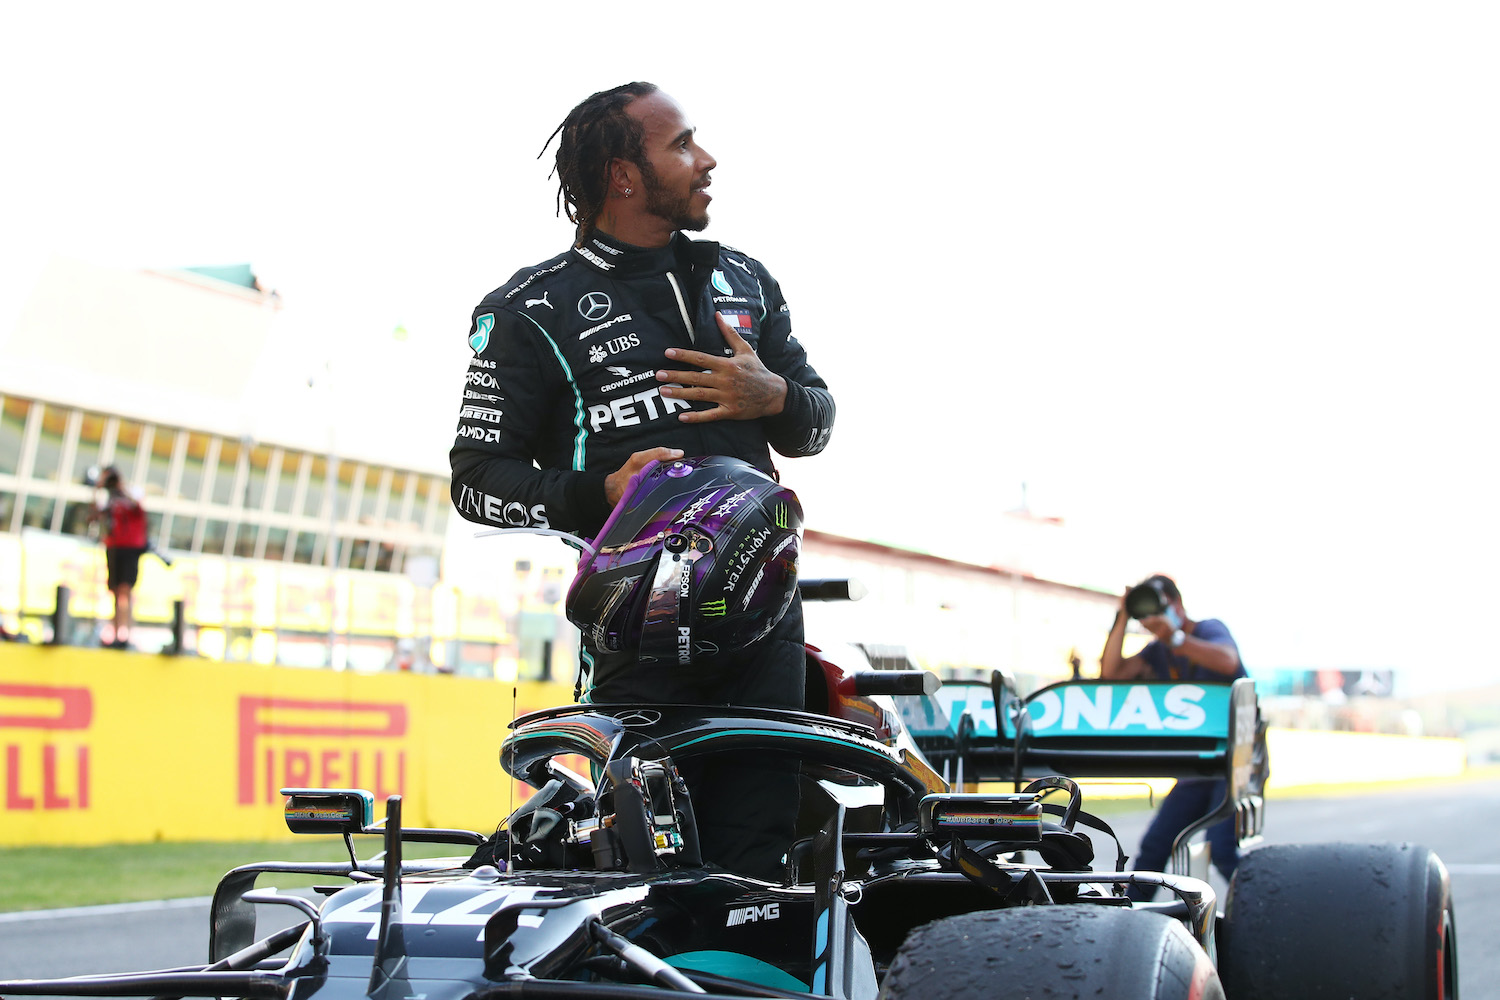 Lewis Hamilton has dominated Formula One racing since he joined the circuit, but he he feels the current batch of F1 tires isn't up to snuff.